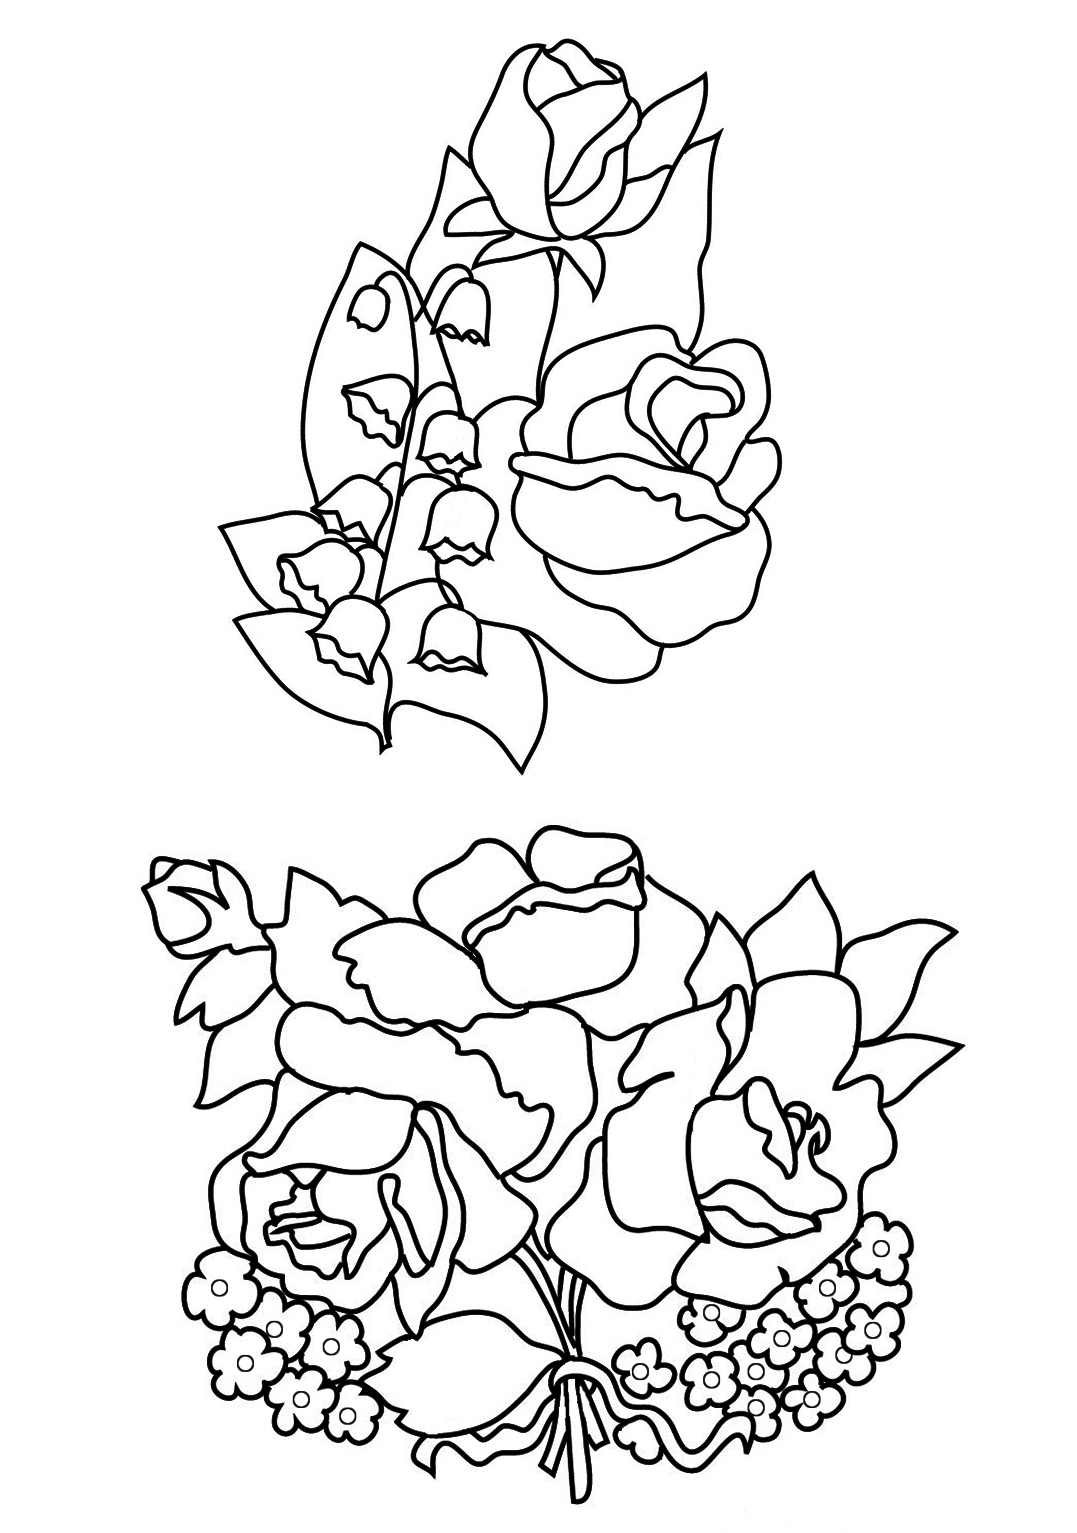 colouring flowers flower coloring pages colouring flowers